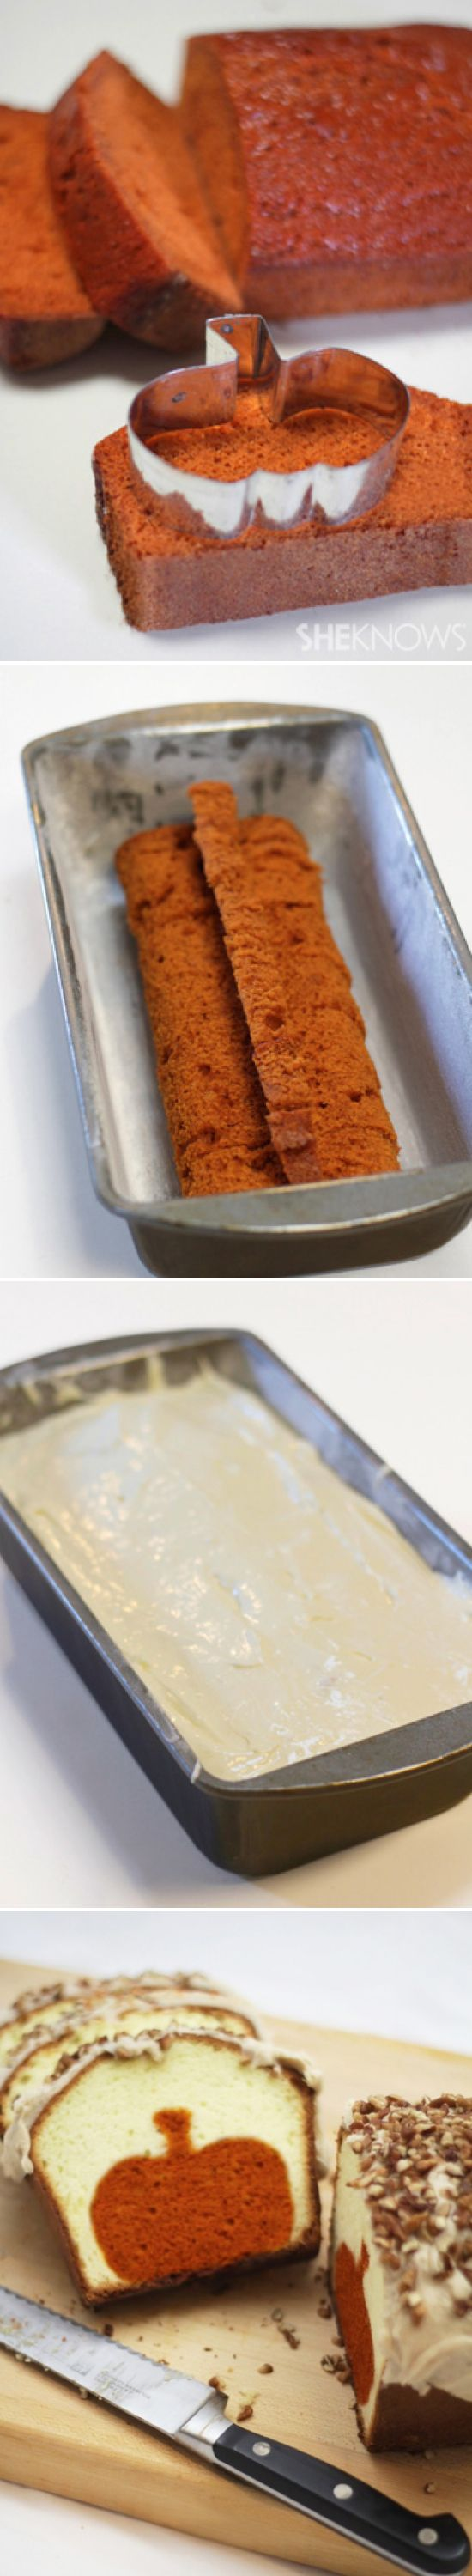 Peekaboo pumpkin pound cake.  You could try it with any shape and flavor cake...seems like a lot of work, but its a neat idea!